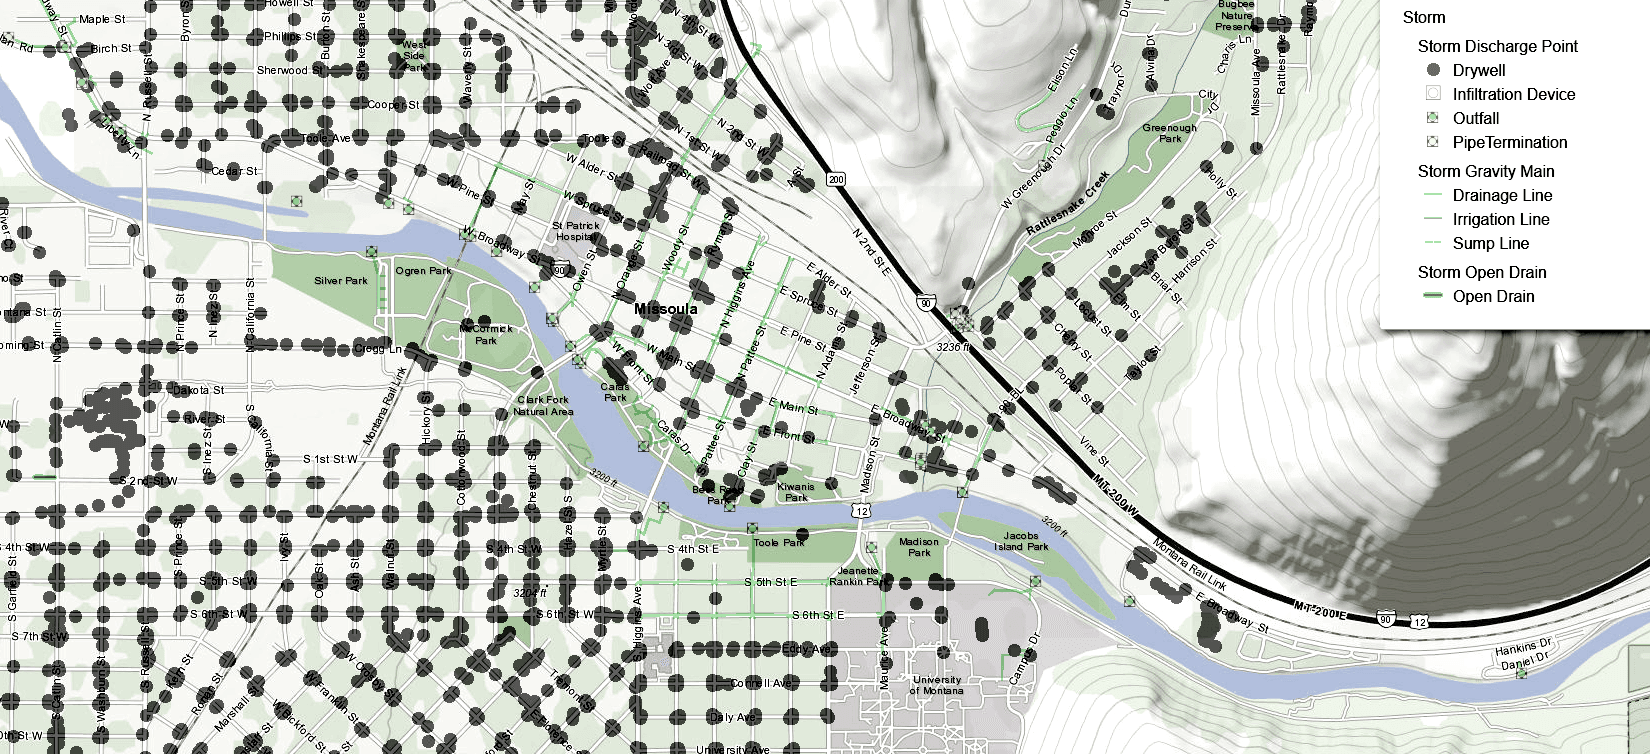 Image showing part of the Missoula Storm Water Map, including hundreds of drywells in a square mile area, with a link to the full page map. Opens in new window